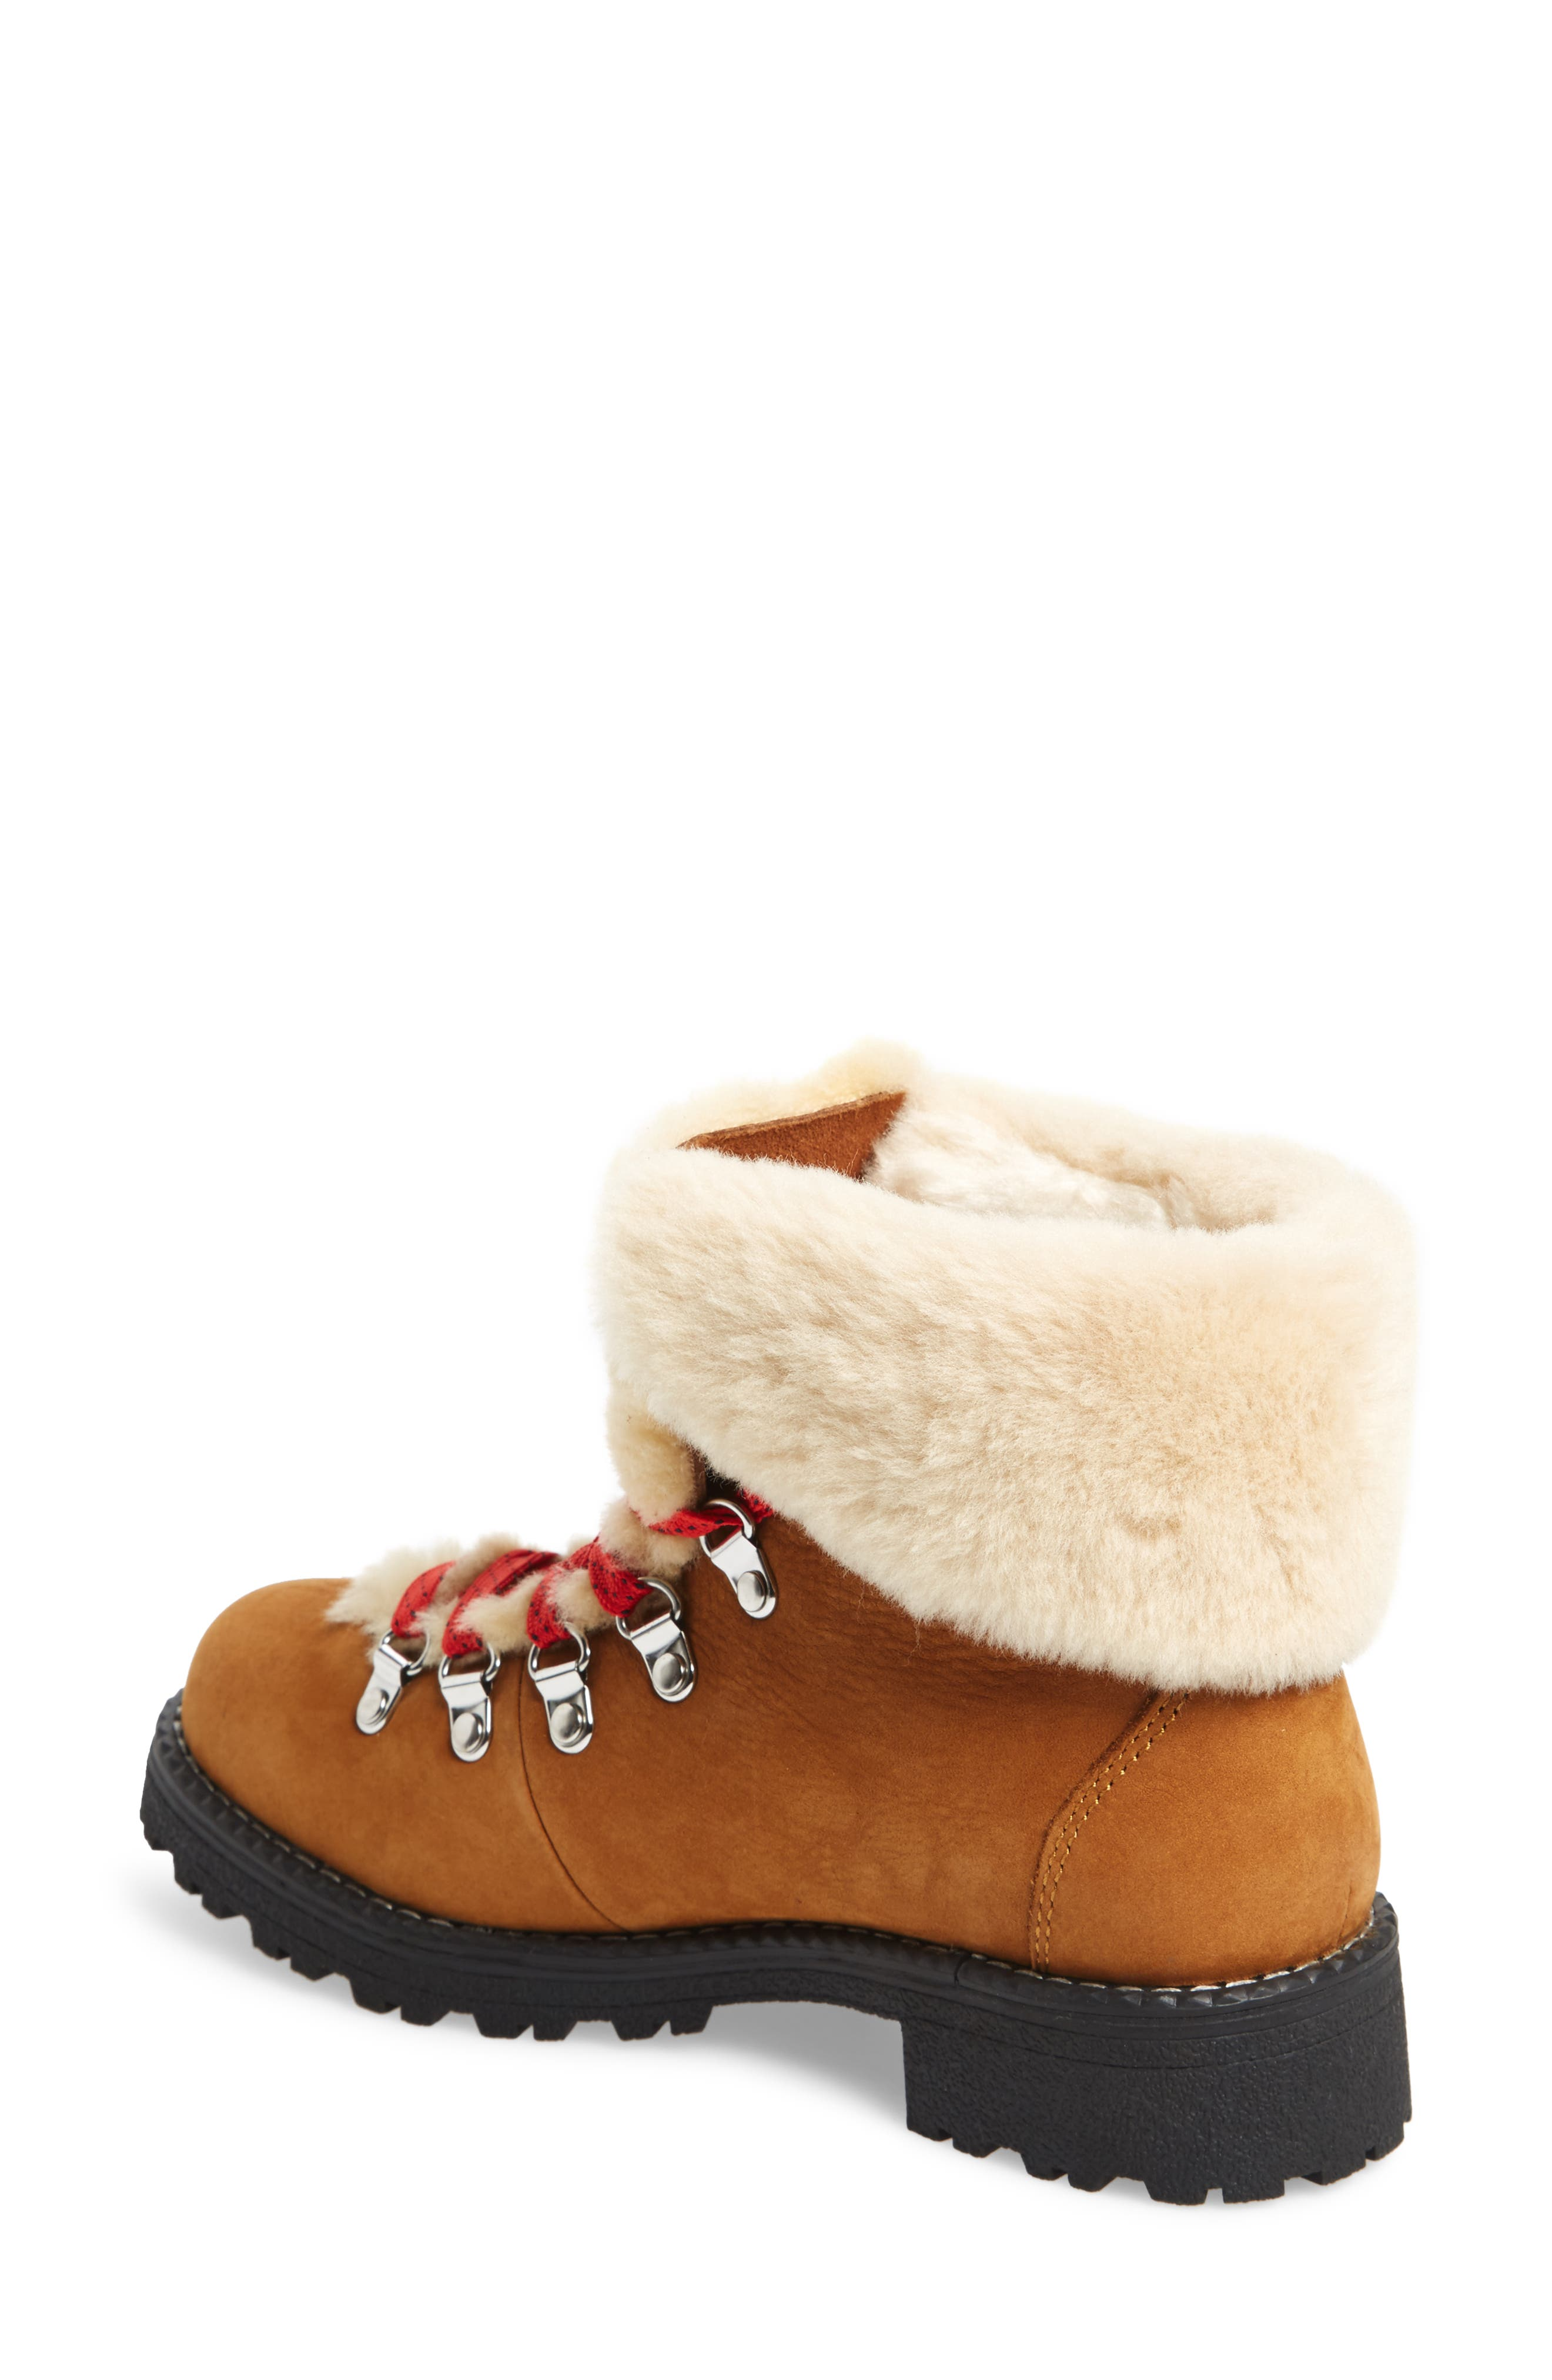 Alternate Image 2  - J.Crew Nordic Genuine Shearling Cuff Winter Boot (Women)